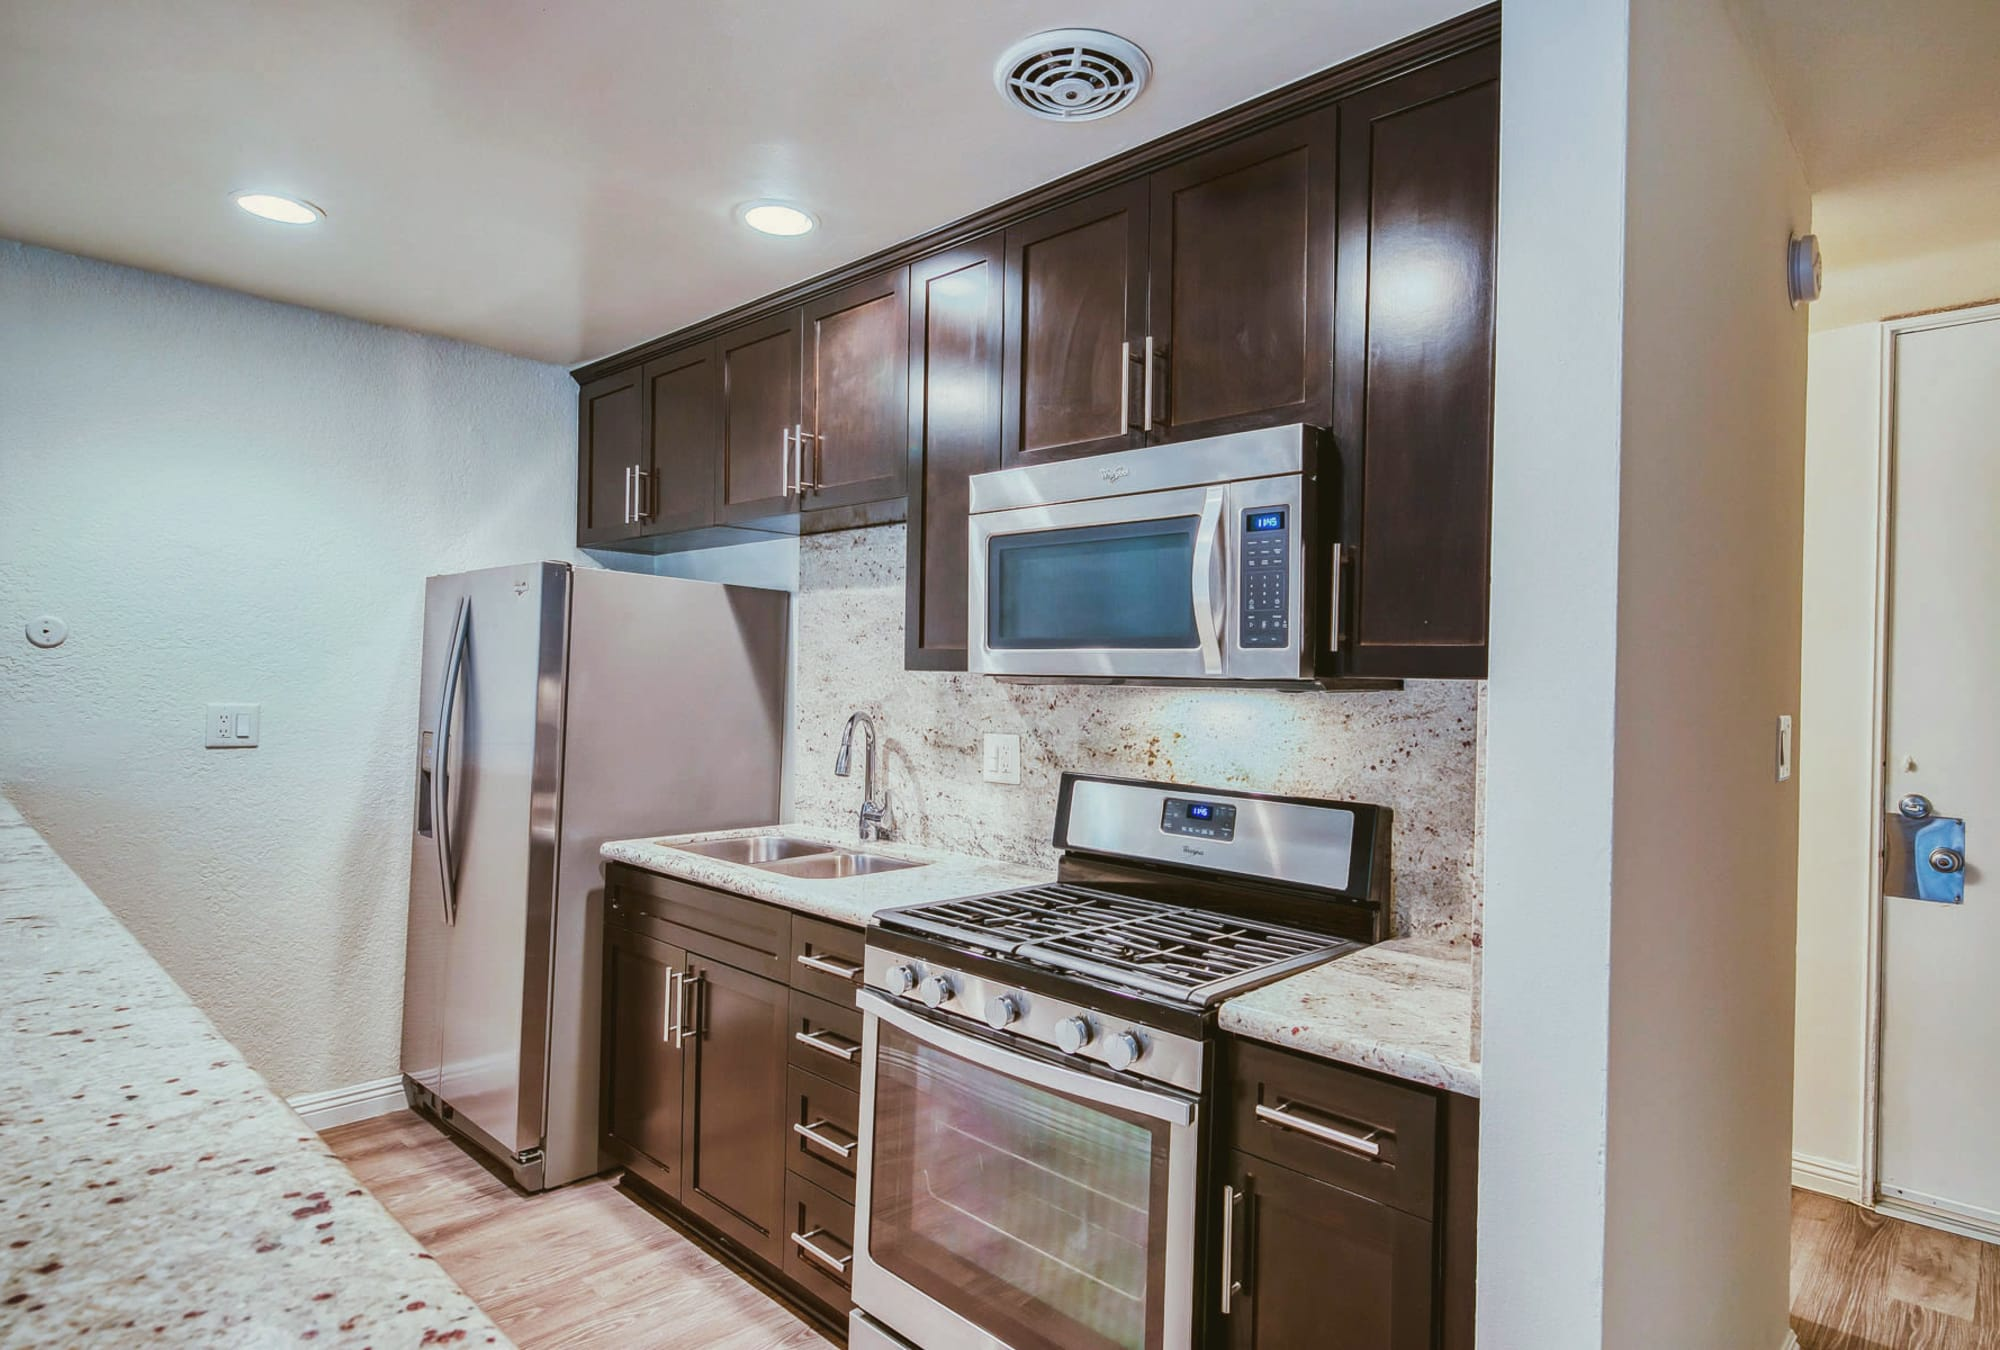 Model home's kitchen with espresso wood cabinetry and granite countertops at Mediterranean Village in West Hollywood, California